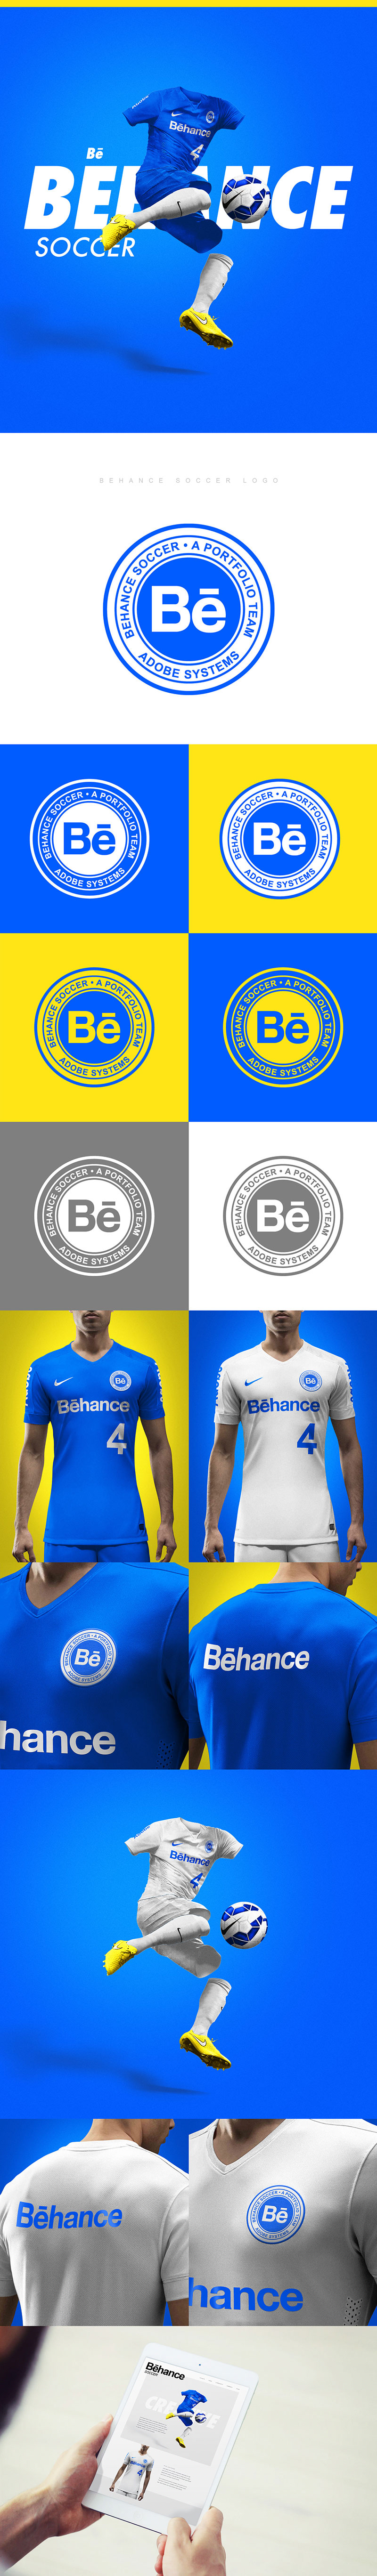 Football Club Brand Designs: Behance Soccer Team by Brandon Williams